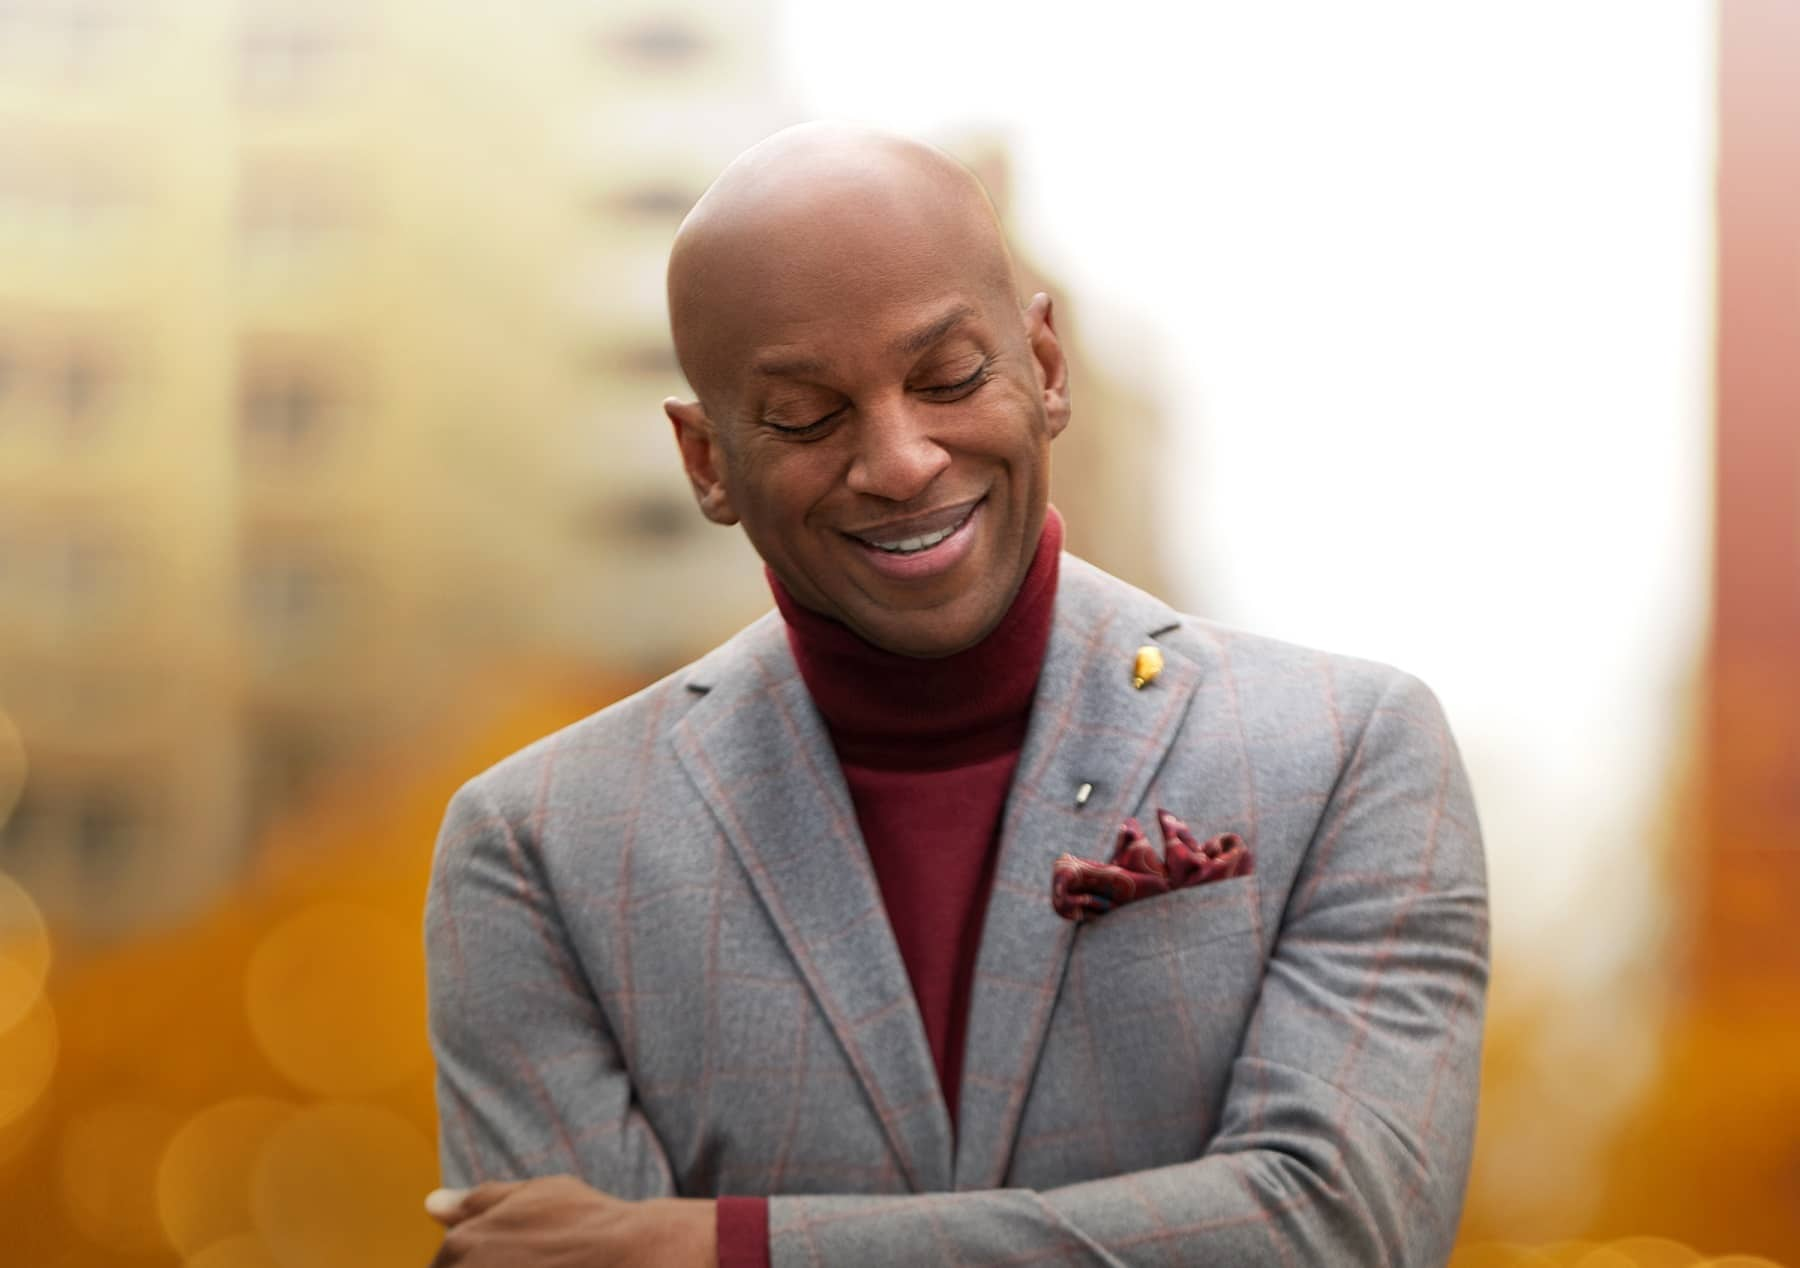 Donnie-McClurkin-A-Different-Song-worshippersgh